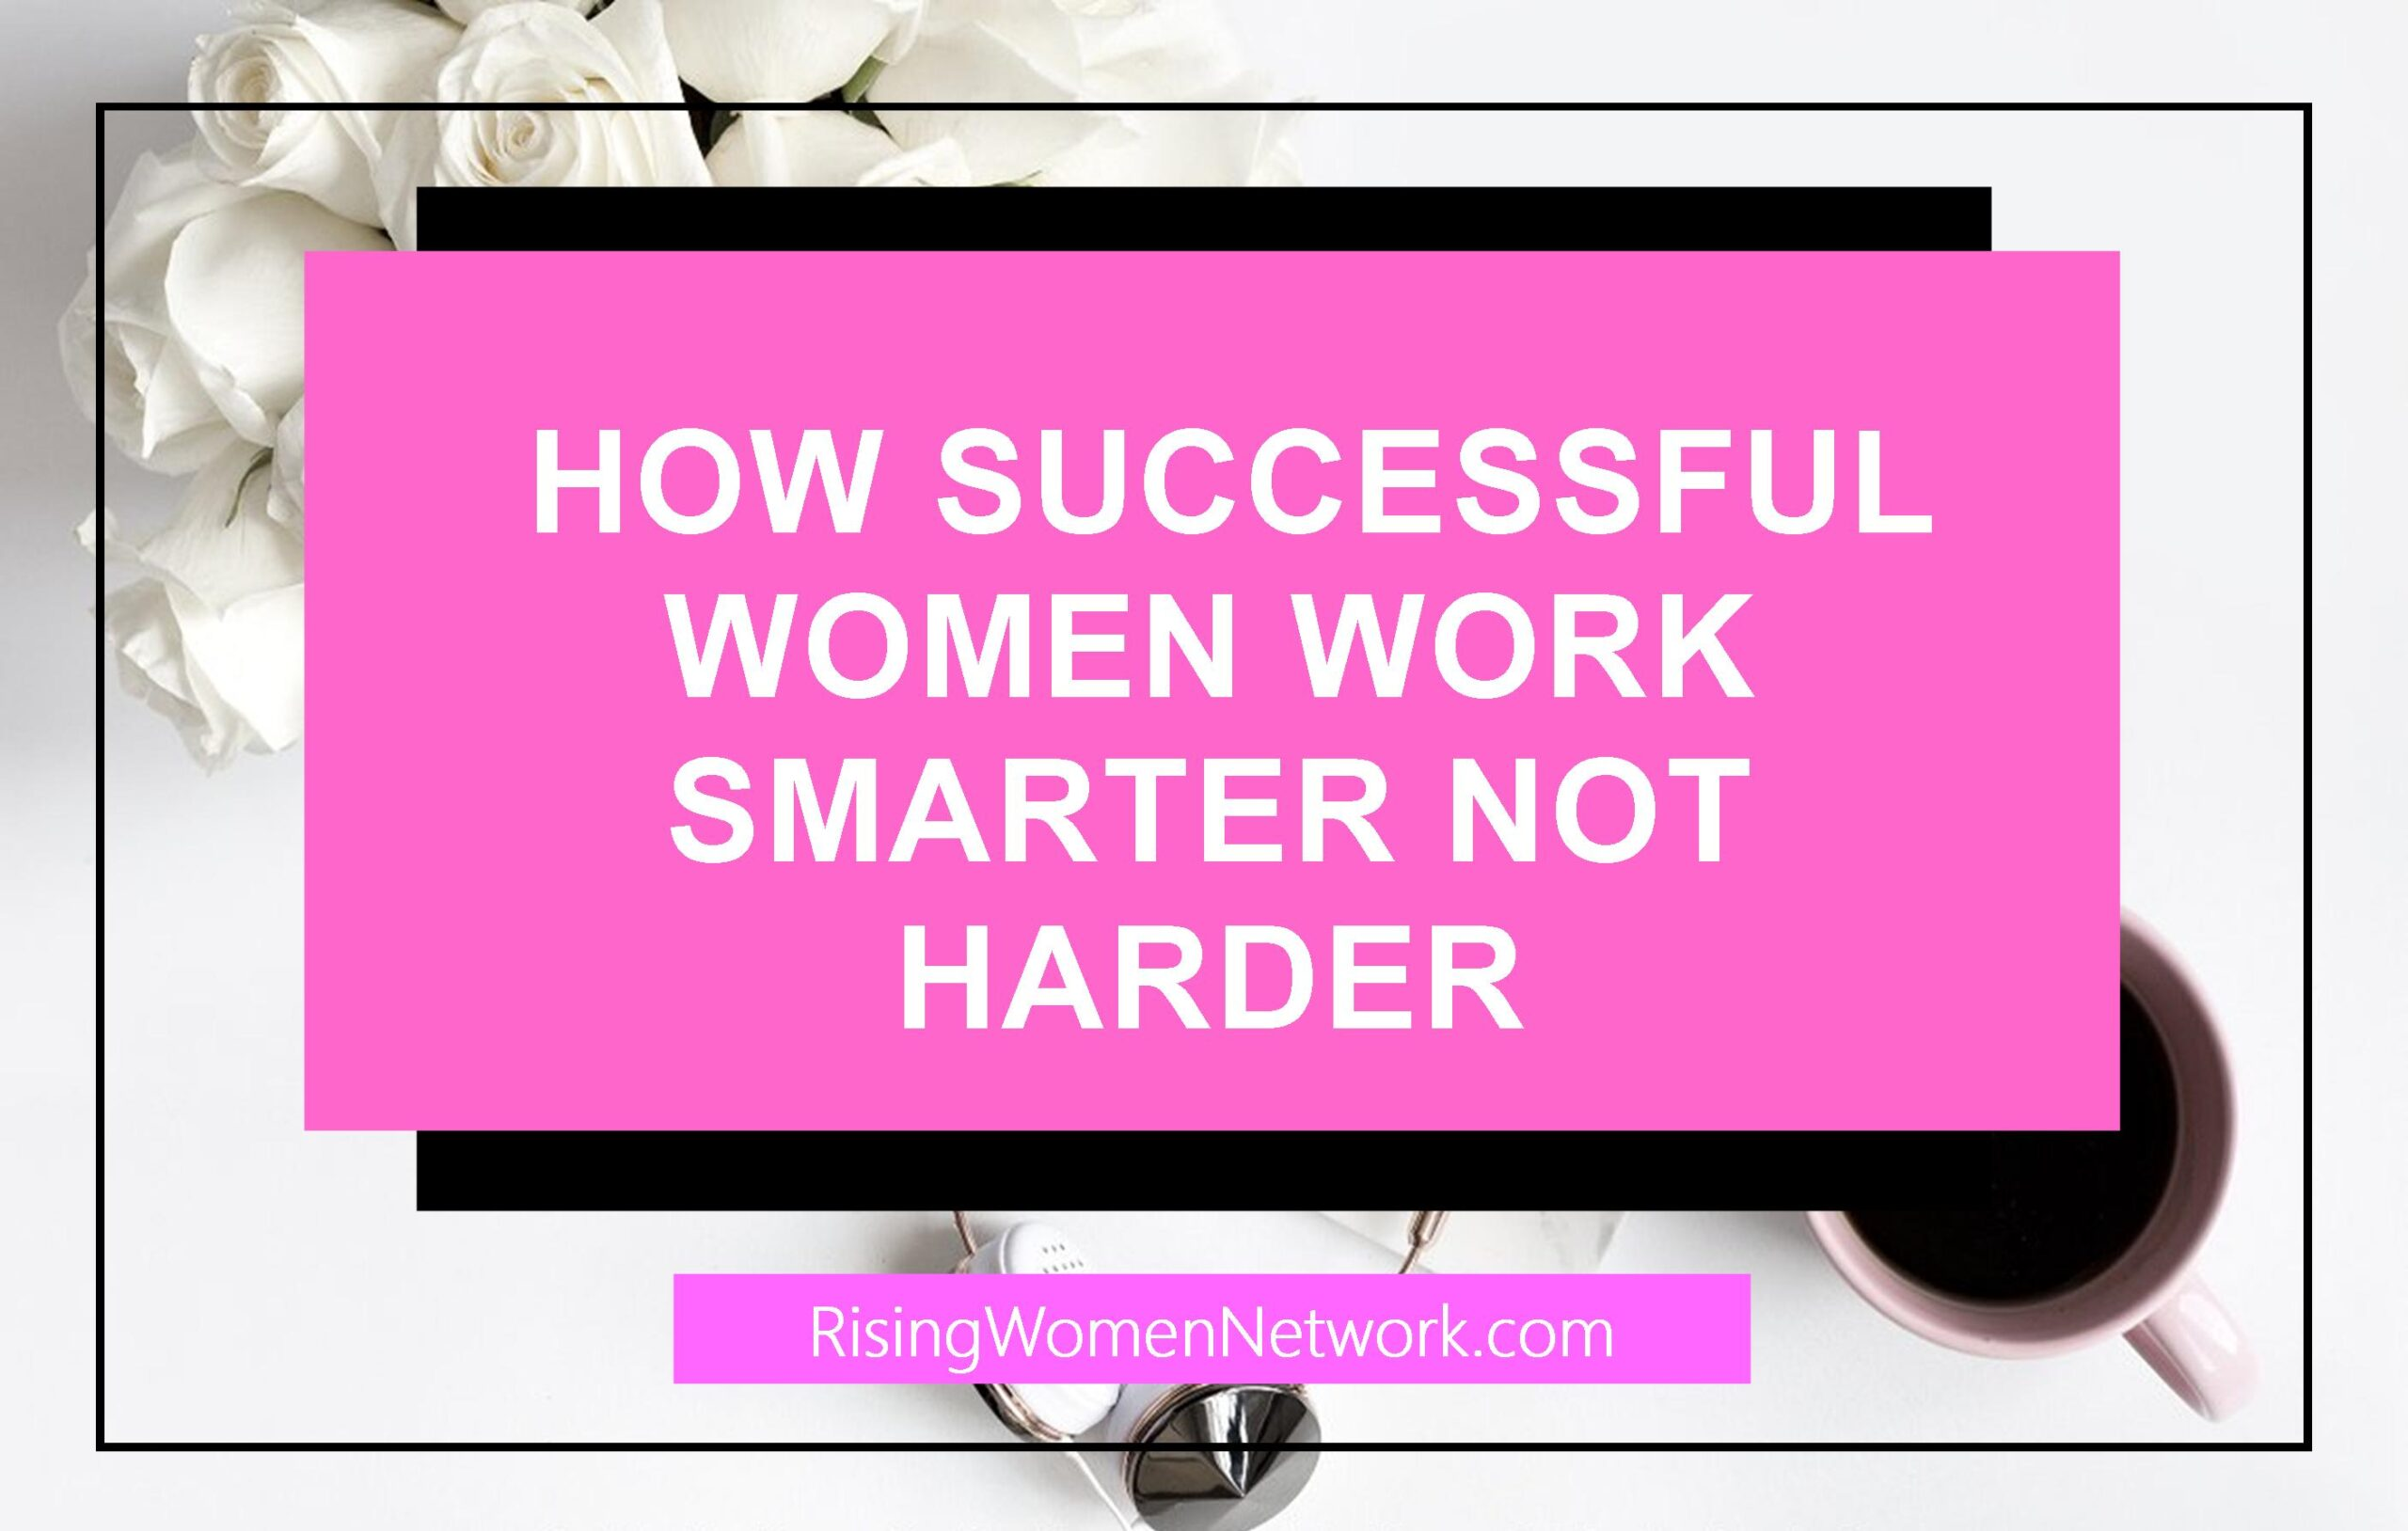 More female entrepreneurs arekilling it in business. To keep the dream chasers on track the only guide you need to master work smarter not harder lifestyle